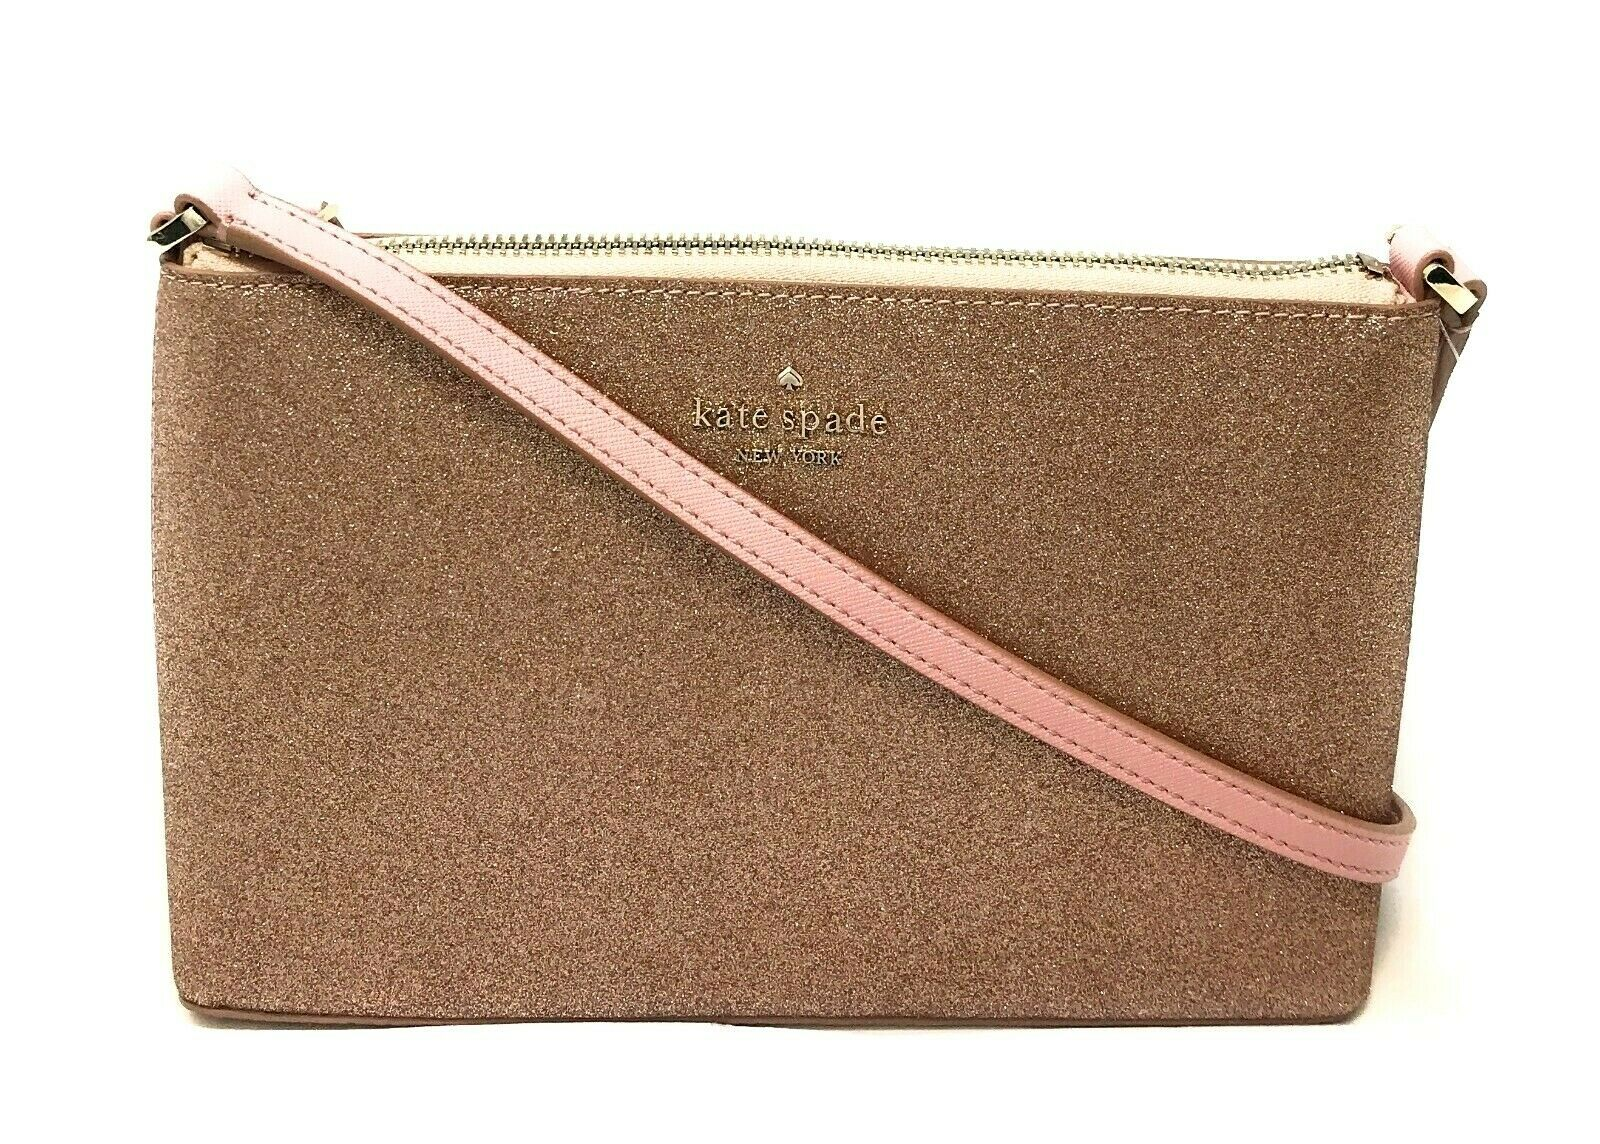 Kate Spade Joeley Glitter Crossbody Bag WKRU6288 $149